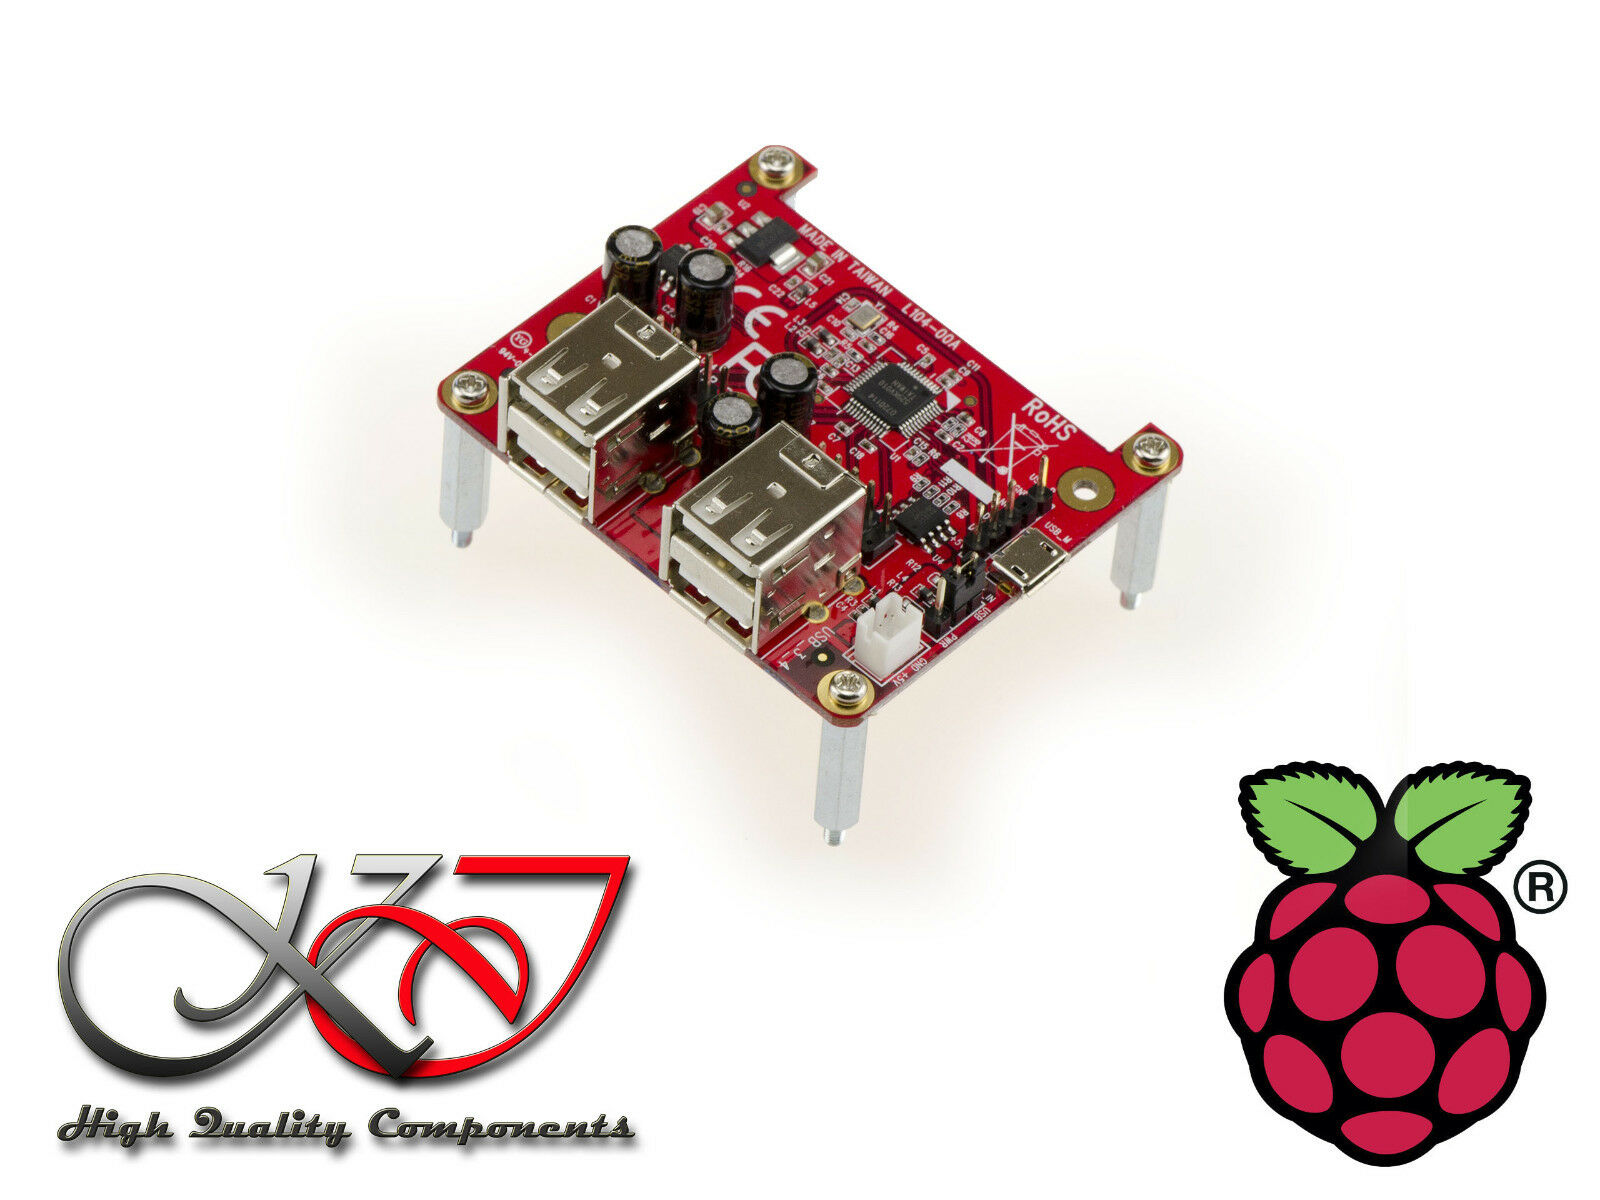 Range Pro - Controller Card 4 Ports USB for Raspberry Pi With Holder